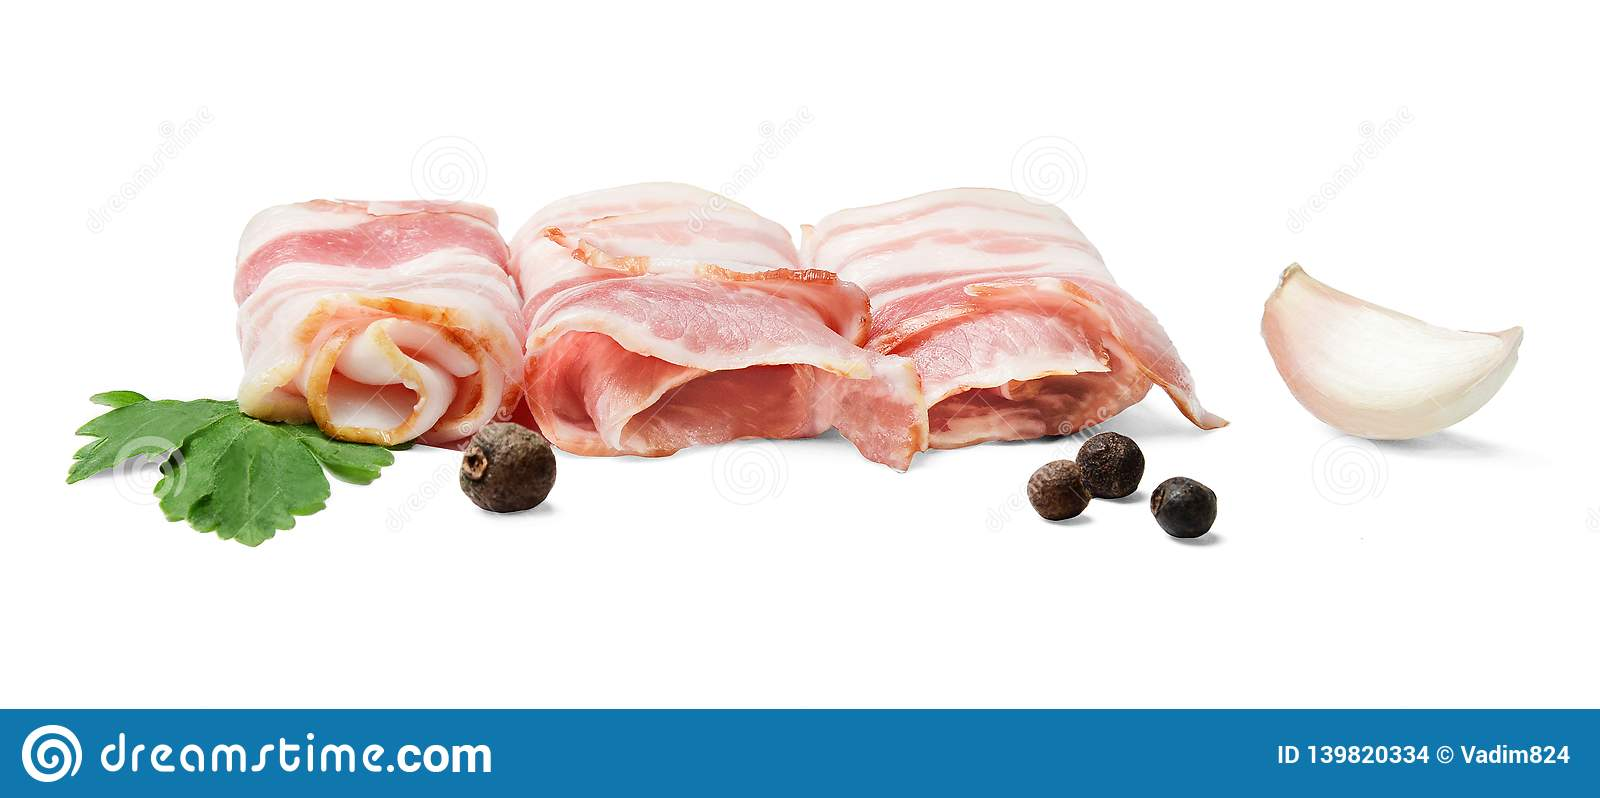 Round mugs of bacon with spices on a white background.